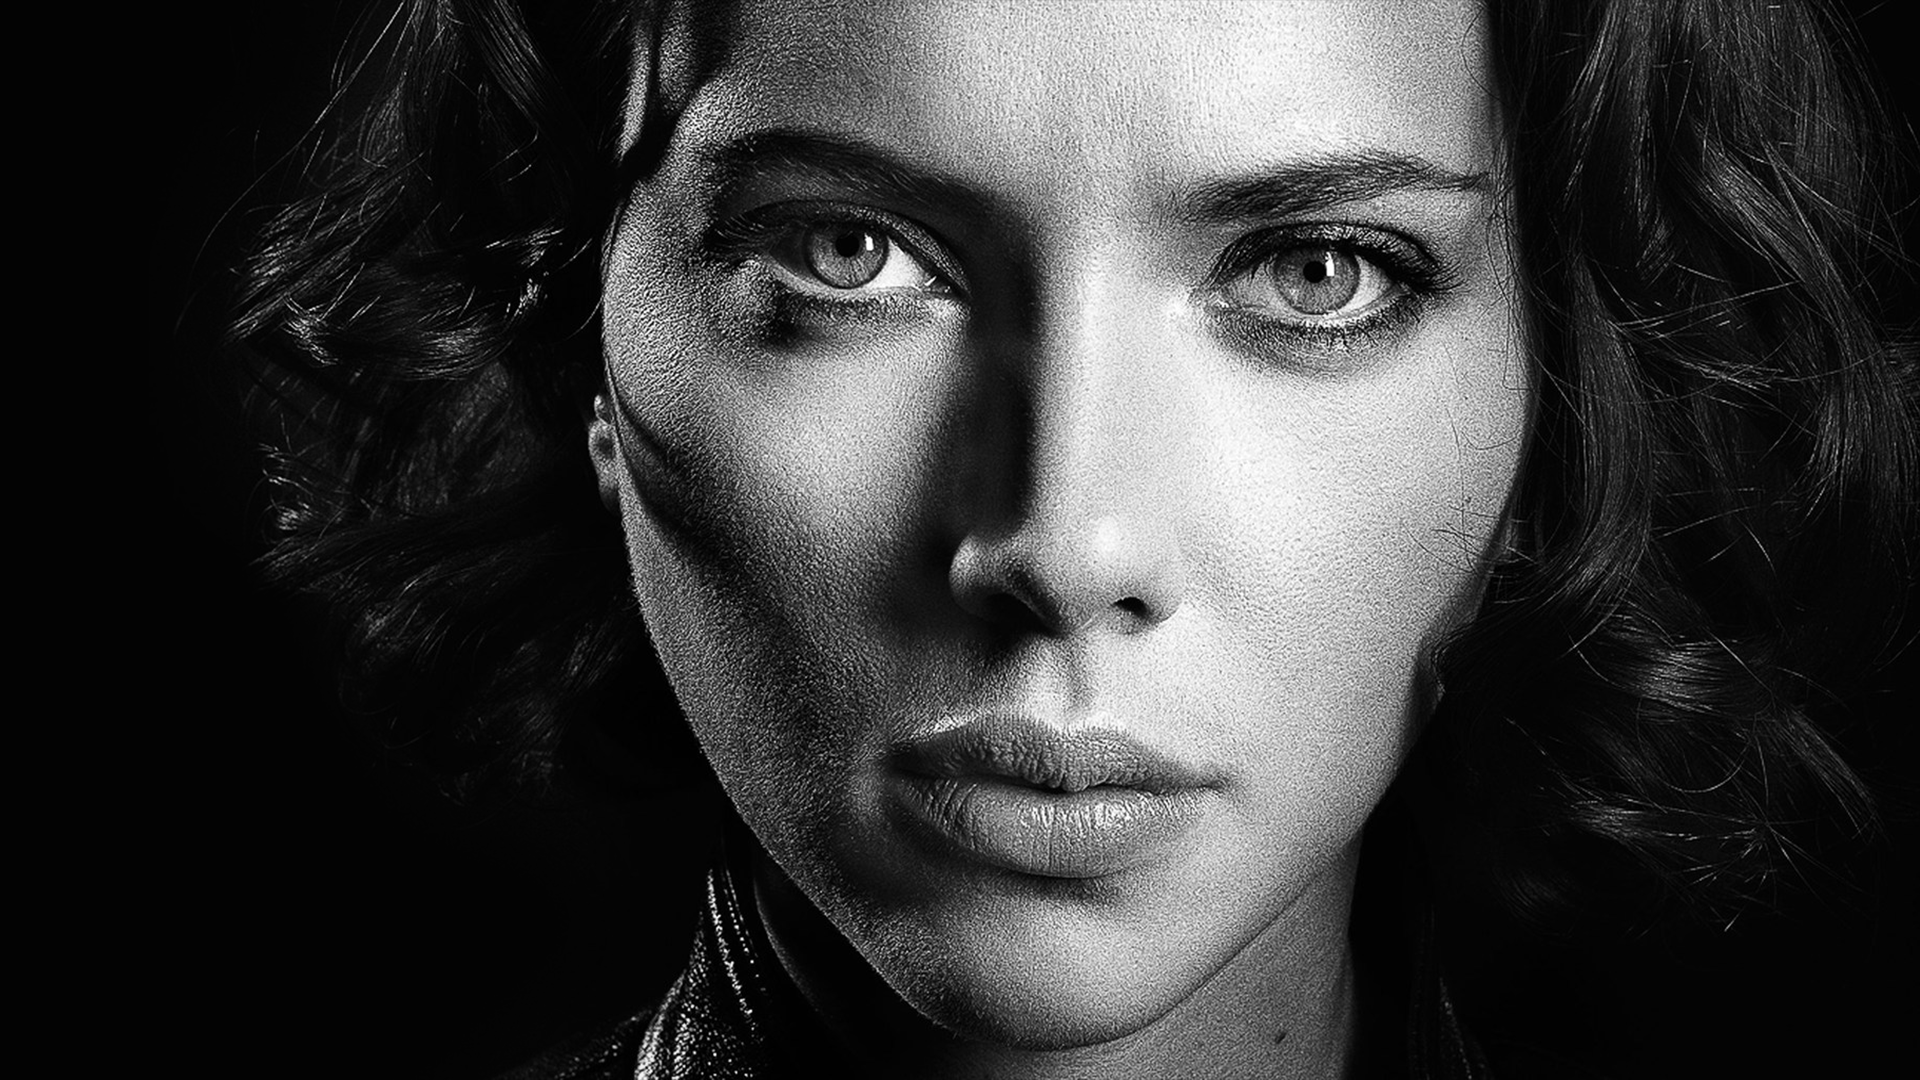 Scarlett Johansson Full HD Wallpaper and Background Image ...